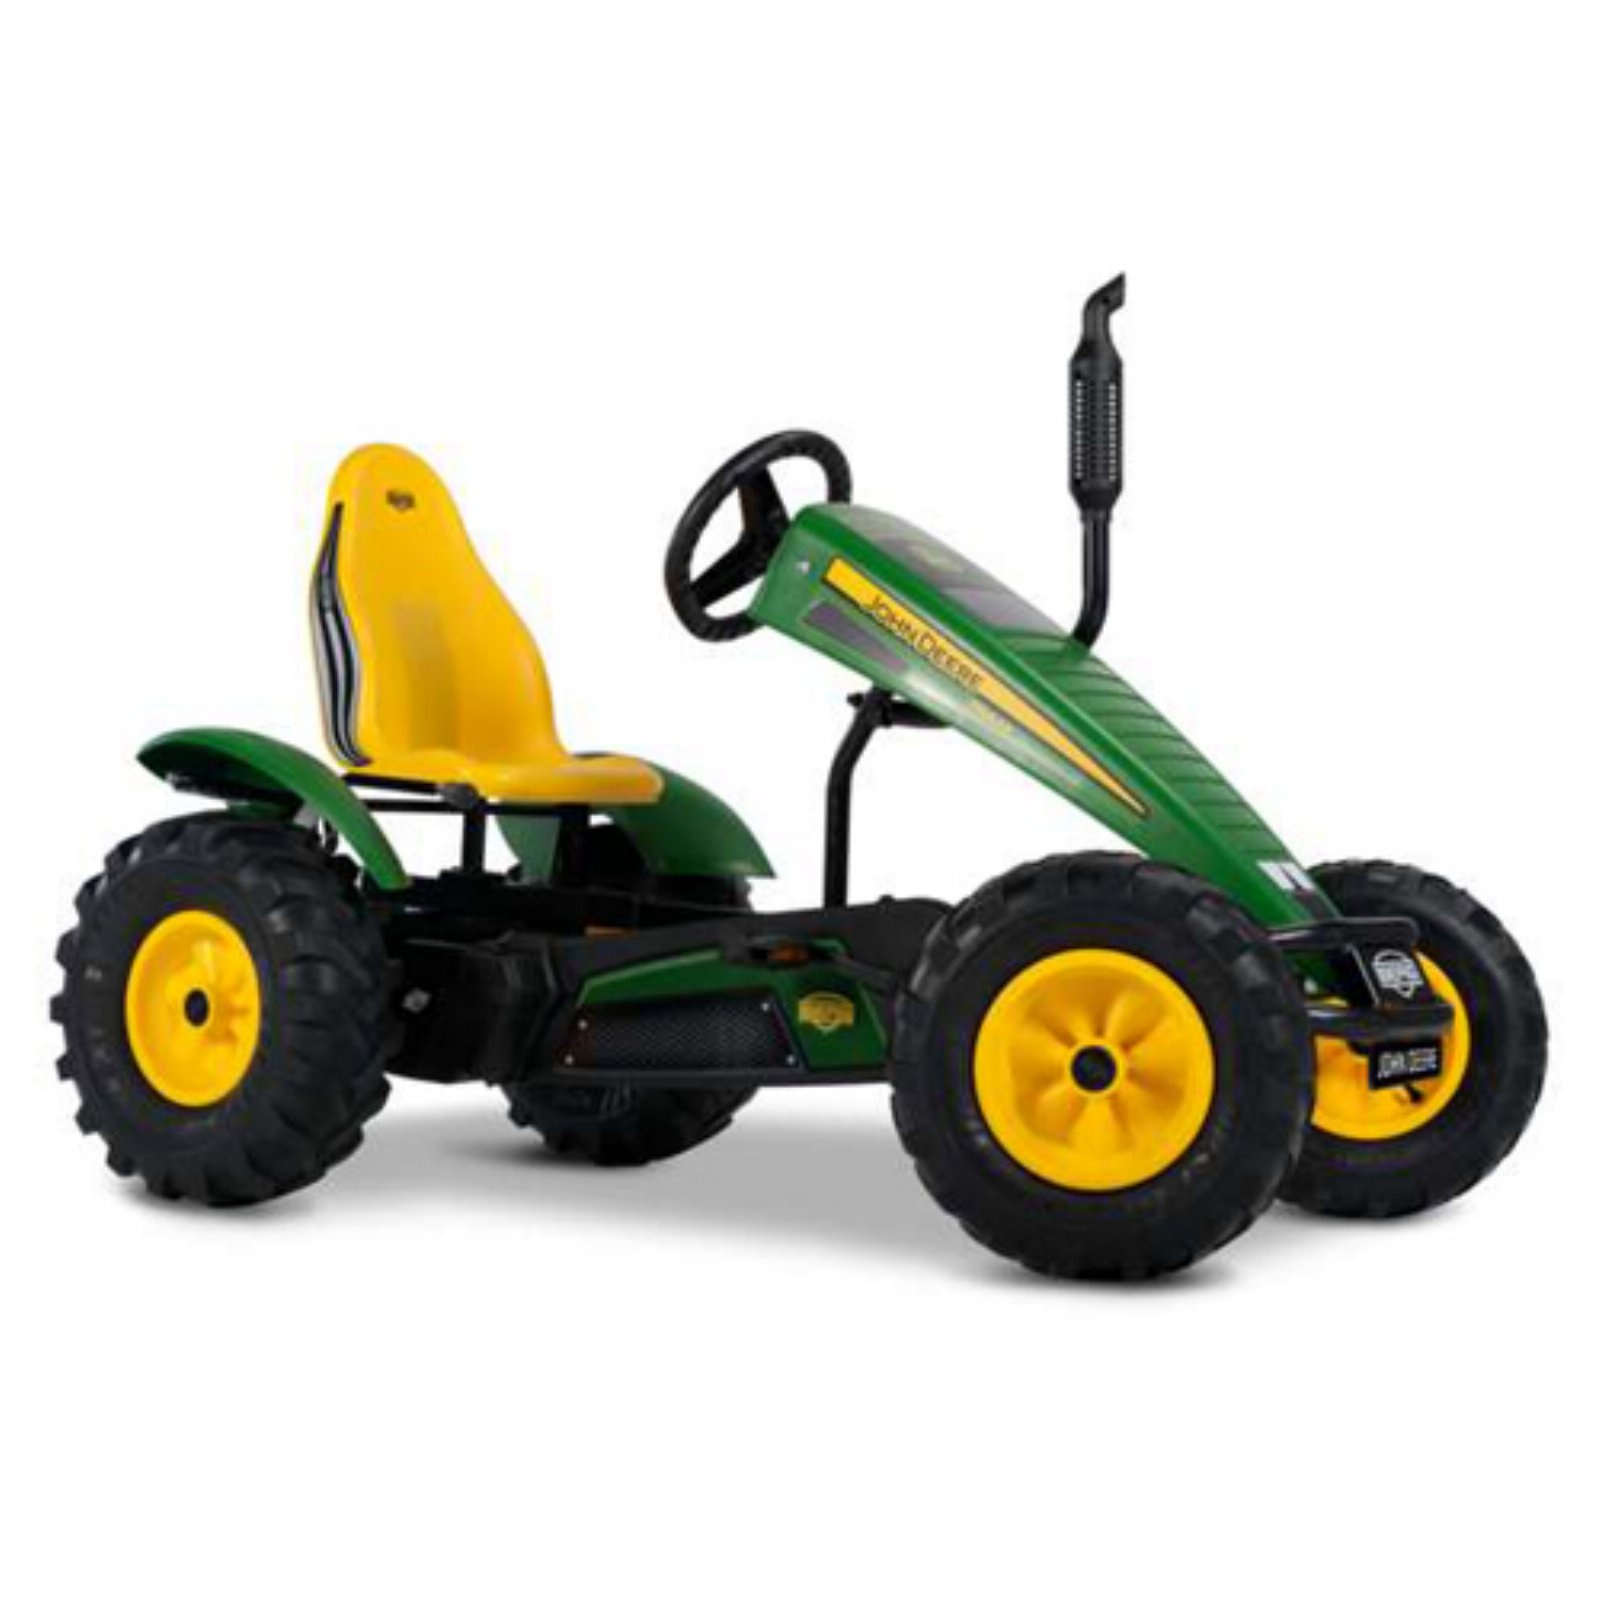 Berg USA John Deere BFR 3 Pedal Go Kart Riding Toy